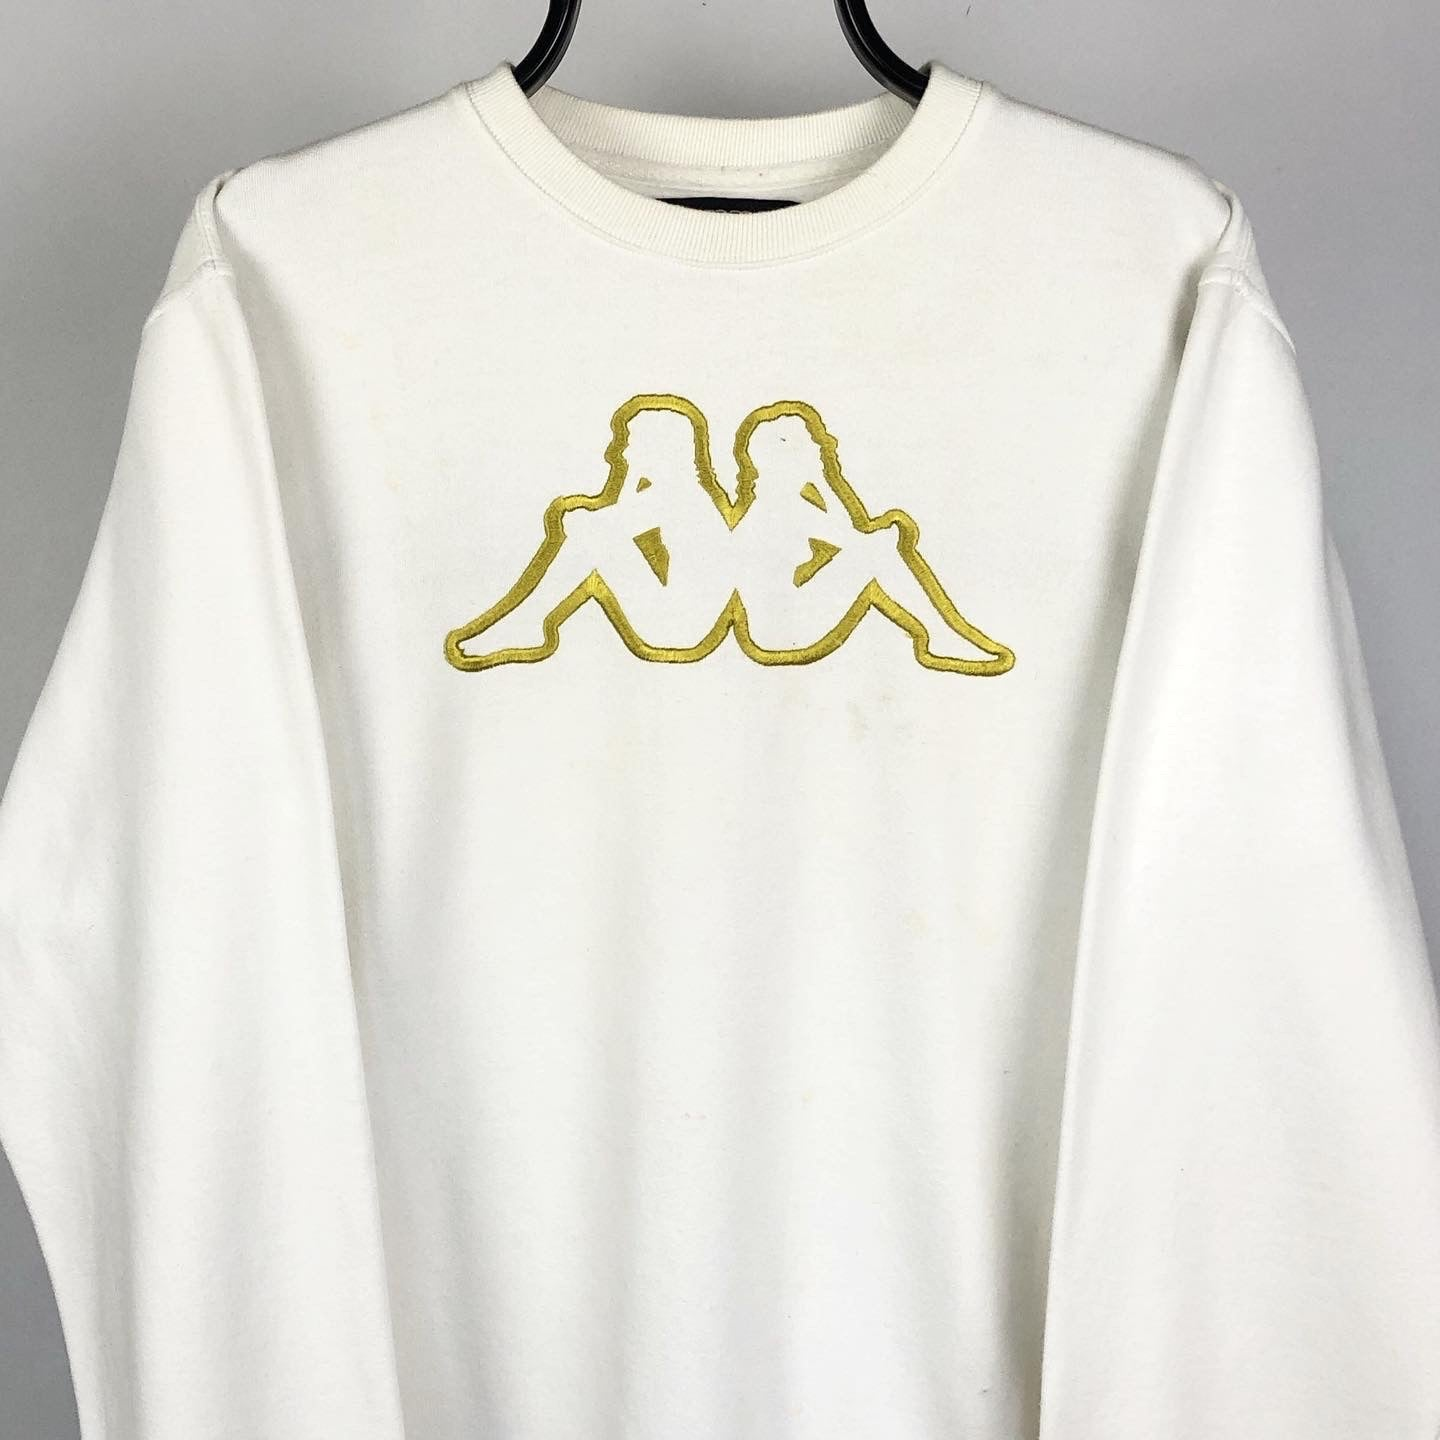 Vintage Kappa Sweatshirt in White & Gold - Men's Medium/Women's Large